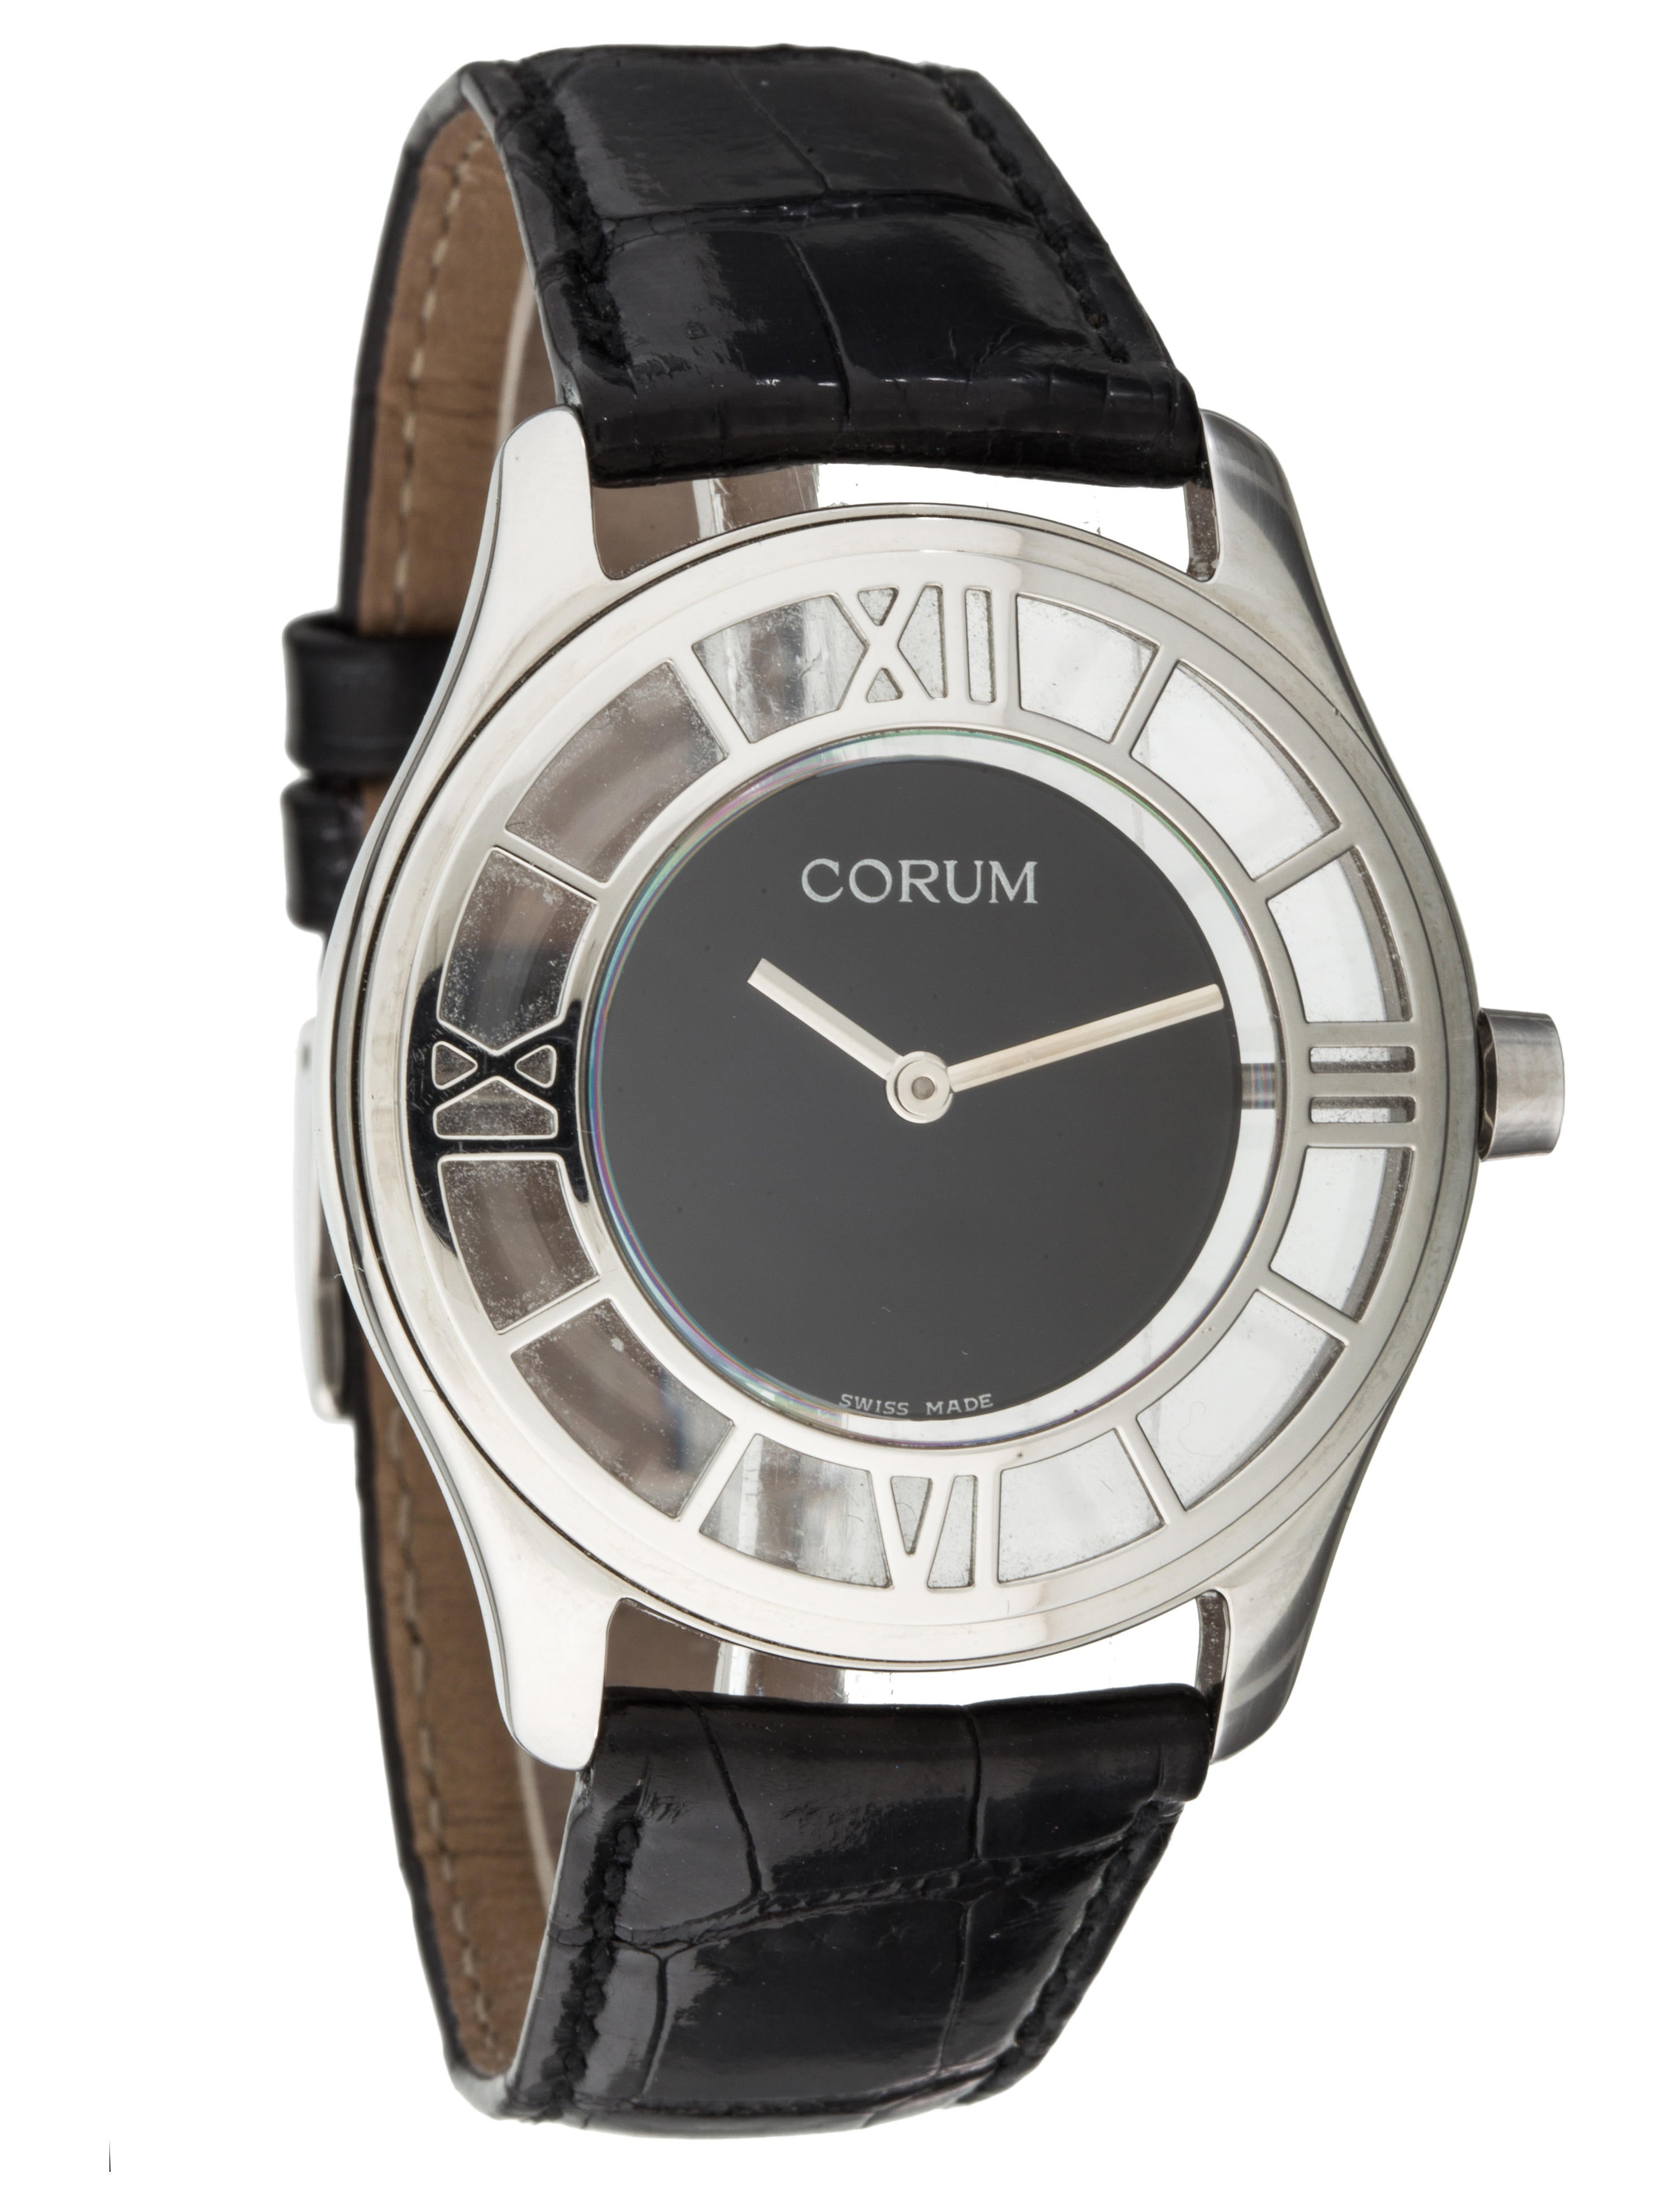 Corum mystere watch strap crm20132 the realreal for Corum watches